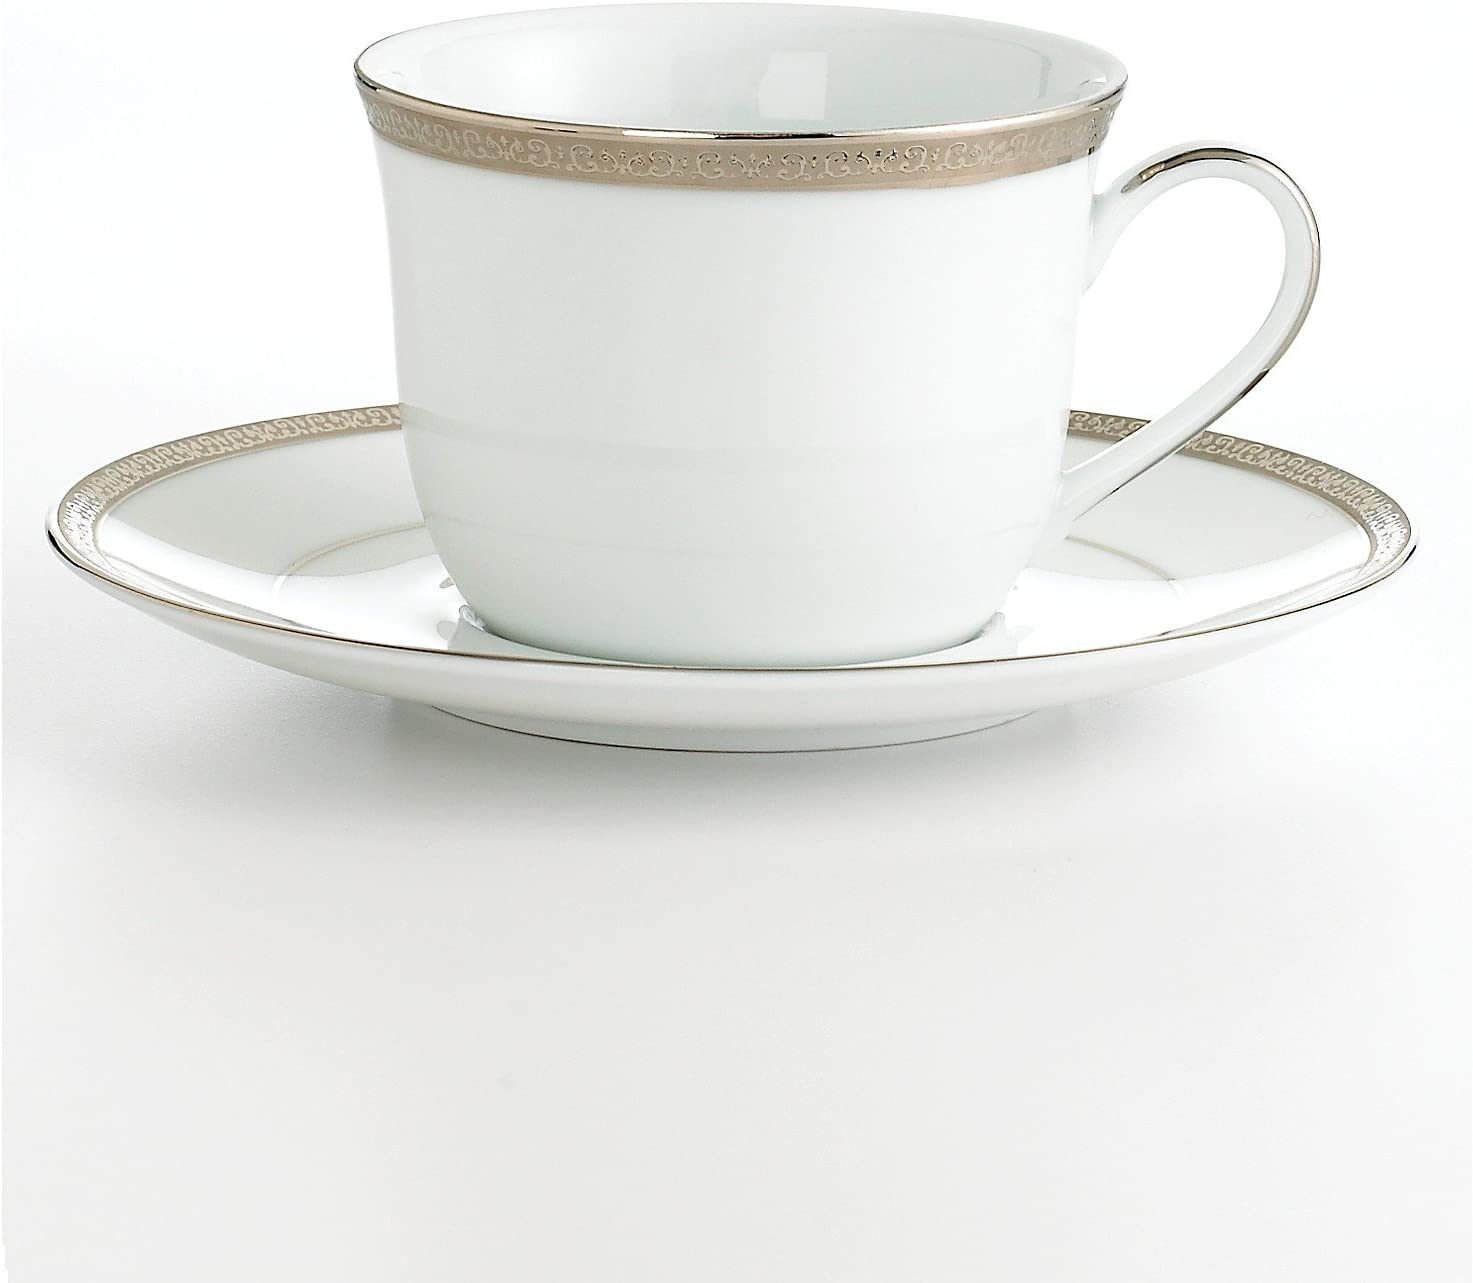 Charter Club Home Grand White Don't miss the campaign Buffet Platinum Saucer Purchase